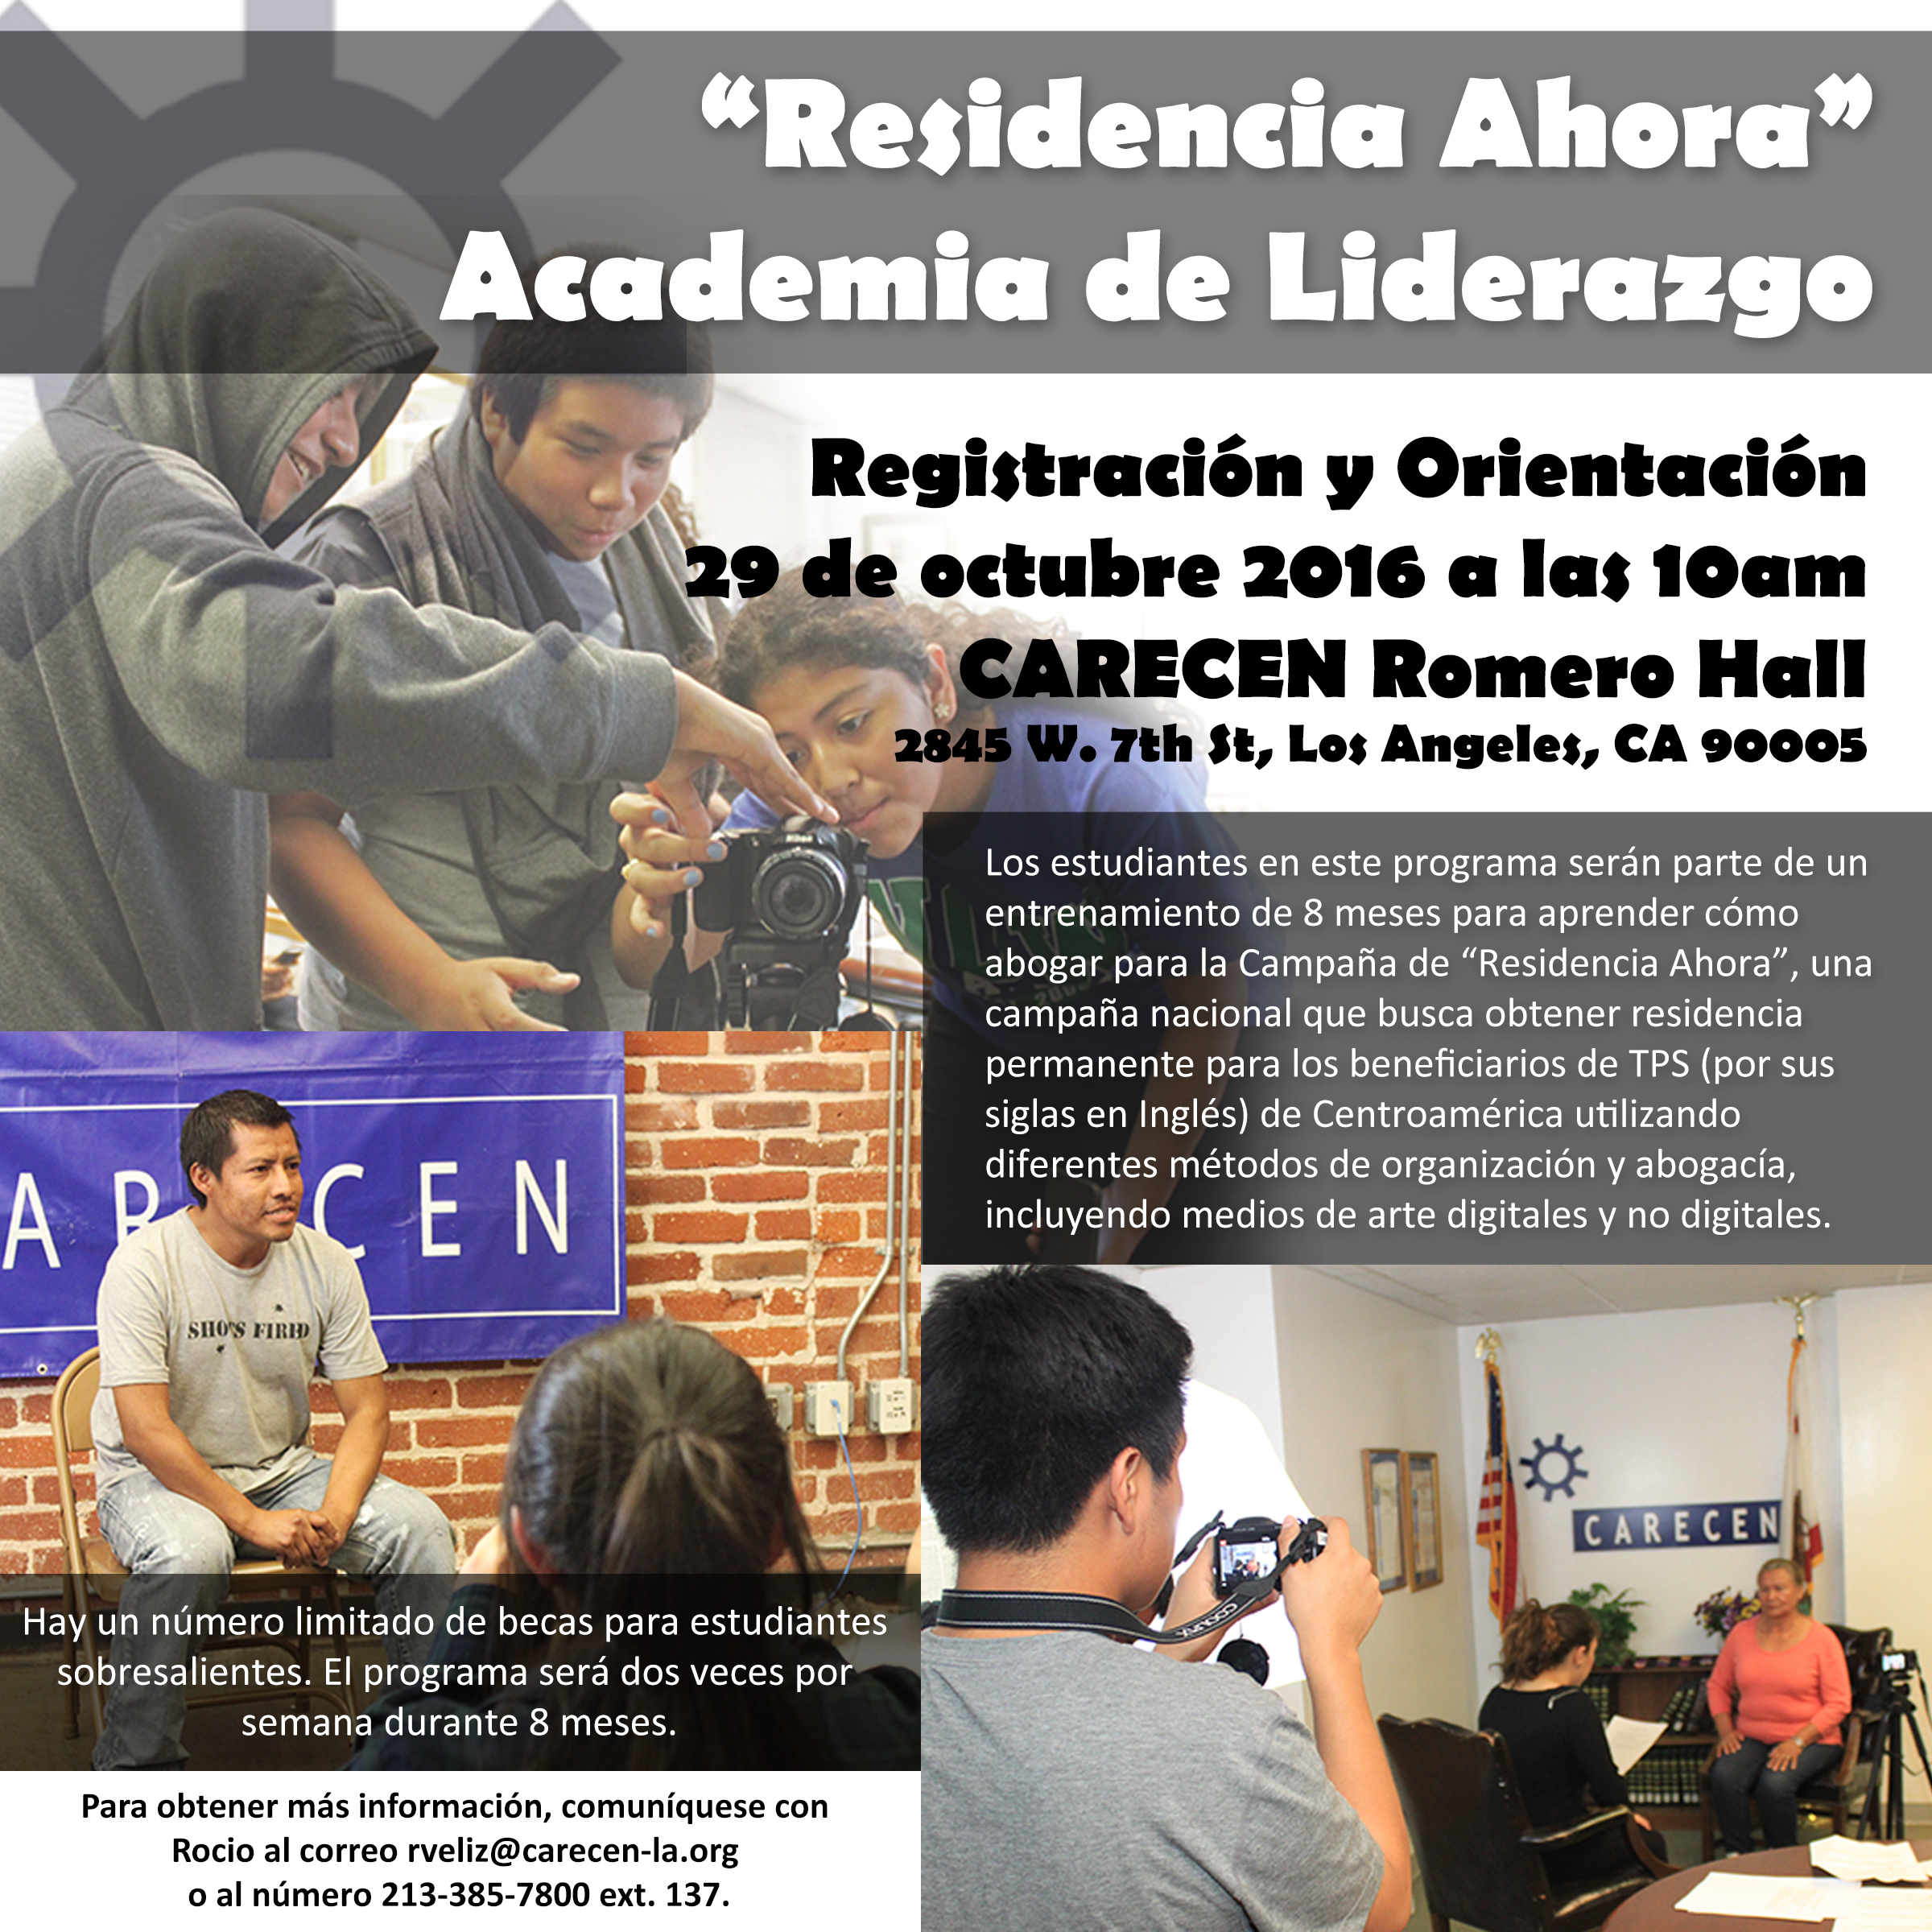 Residency_Now_Leadership_Academy_Flyer_9-2016_(Spanish)2.jpg